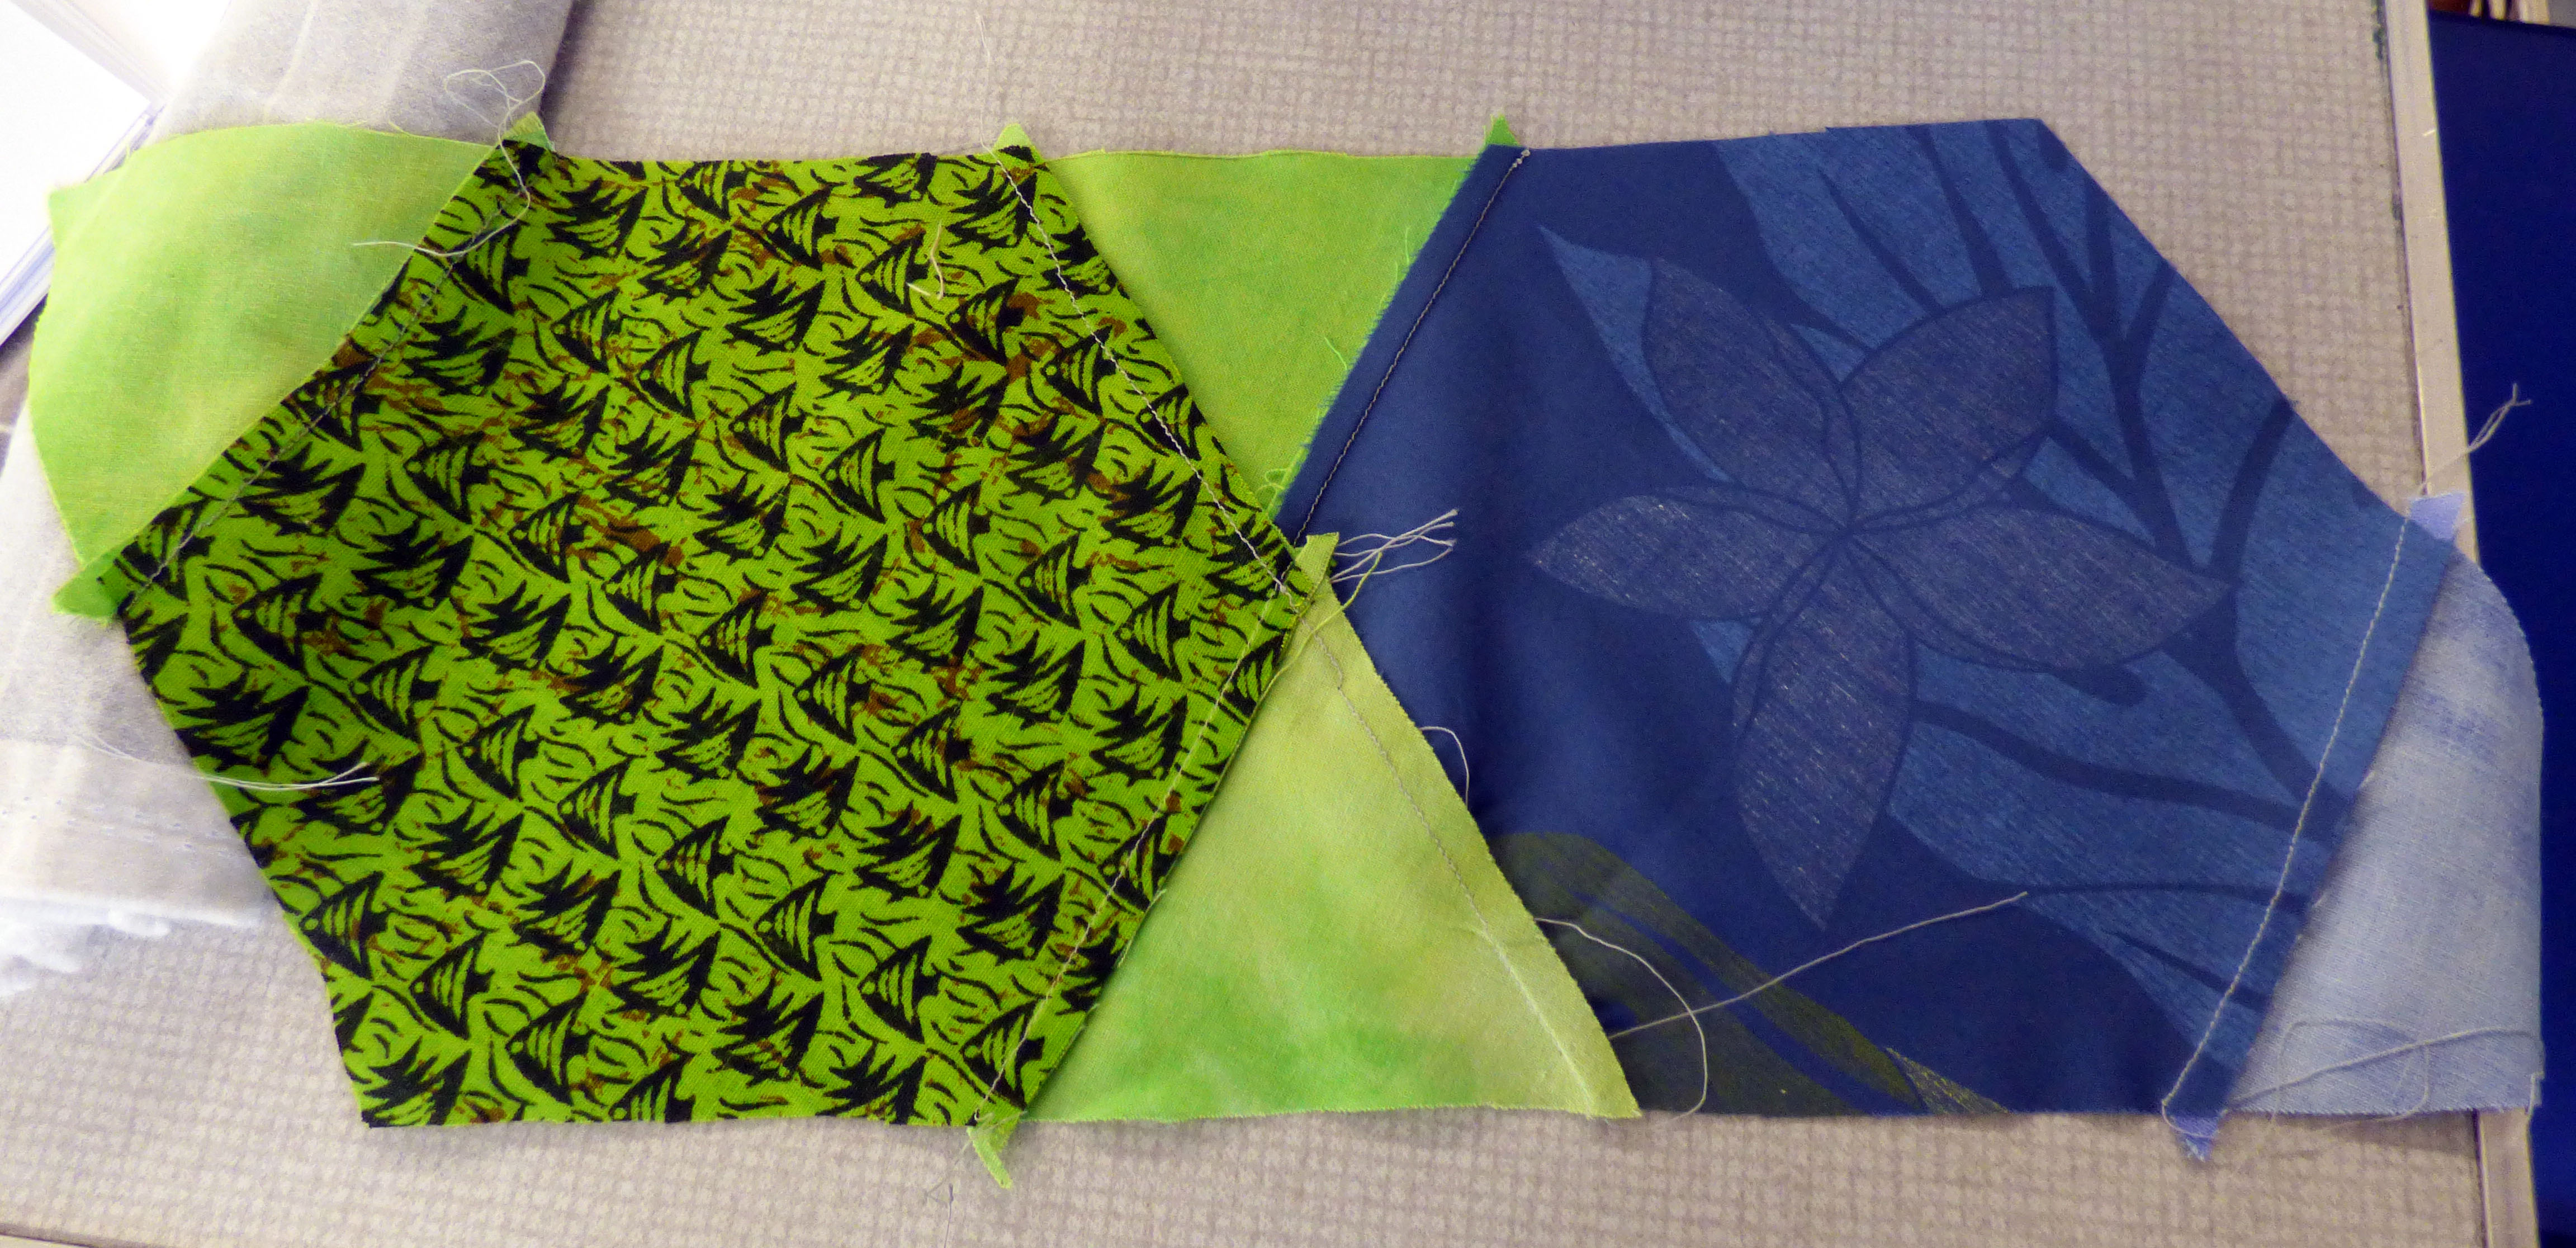 (reverse showing seams) Margaret Smith gave us some lessons on quilt construction. This is how the KF quilt block should be sewn